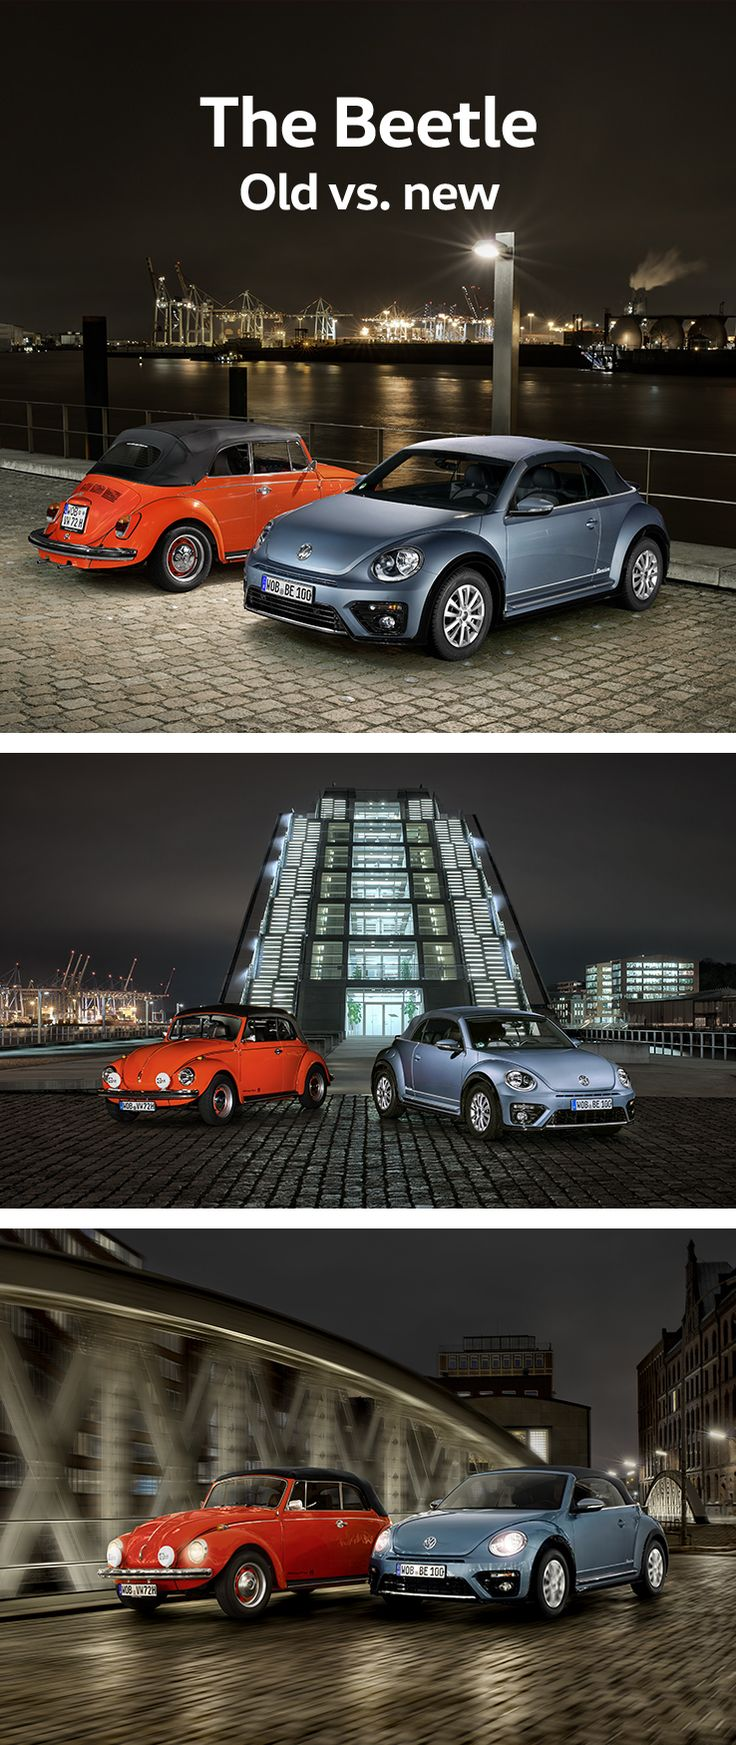 A night photo shoot at several locations around the harbour in Hamburg starring two Volkswagen cars and modern architecture: the classic Beetle Cabriolet 1302 and the modern Beetle Denim.